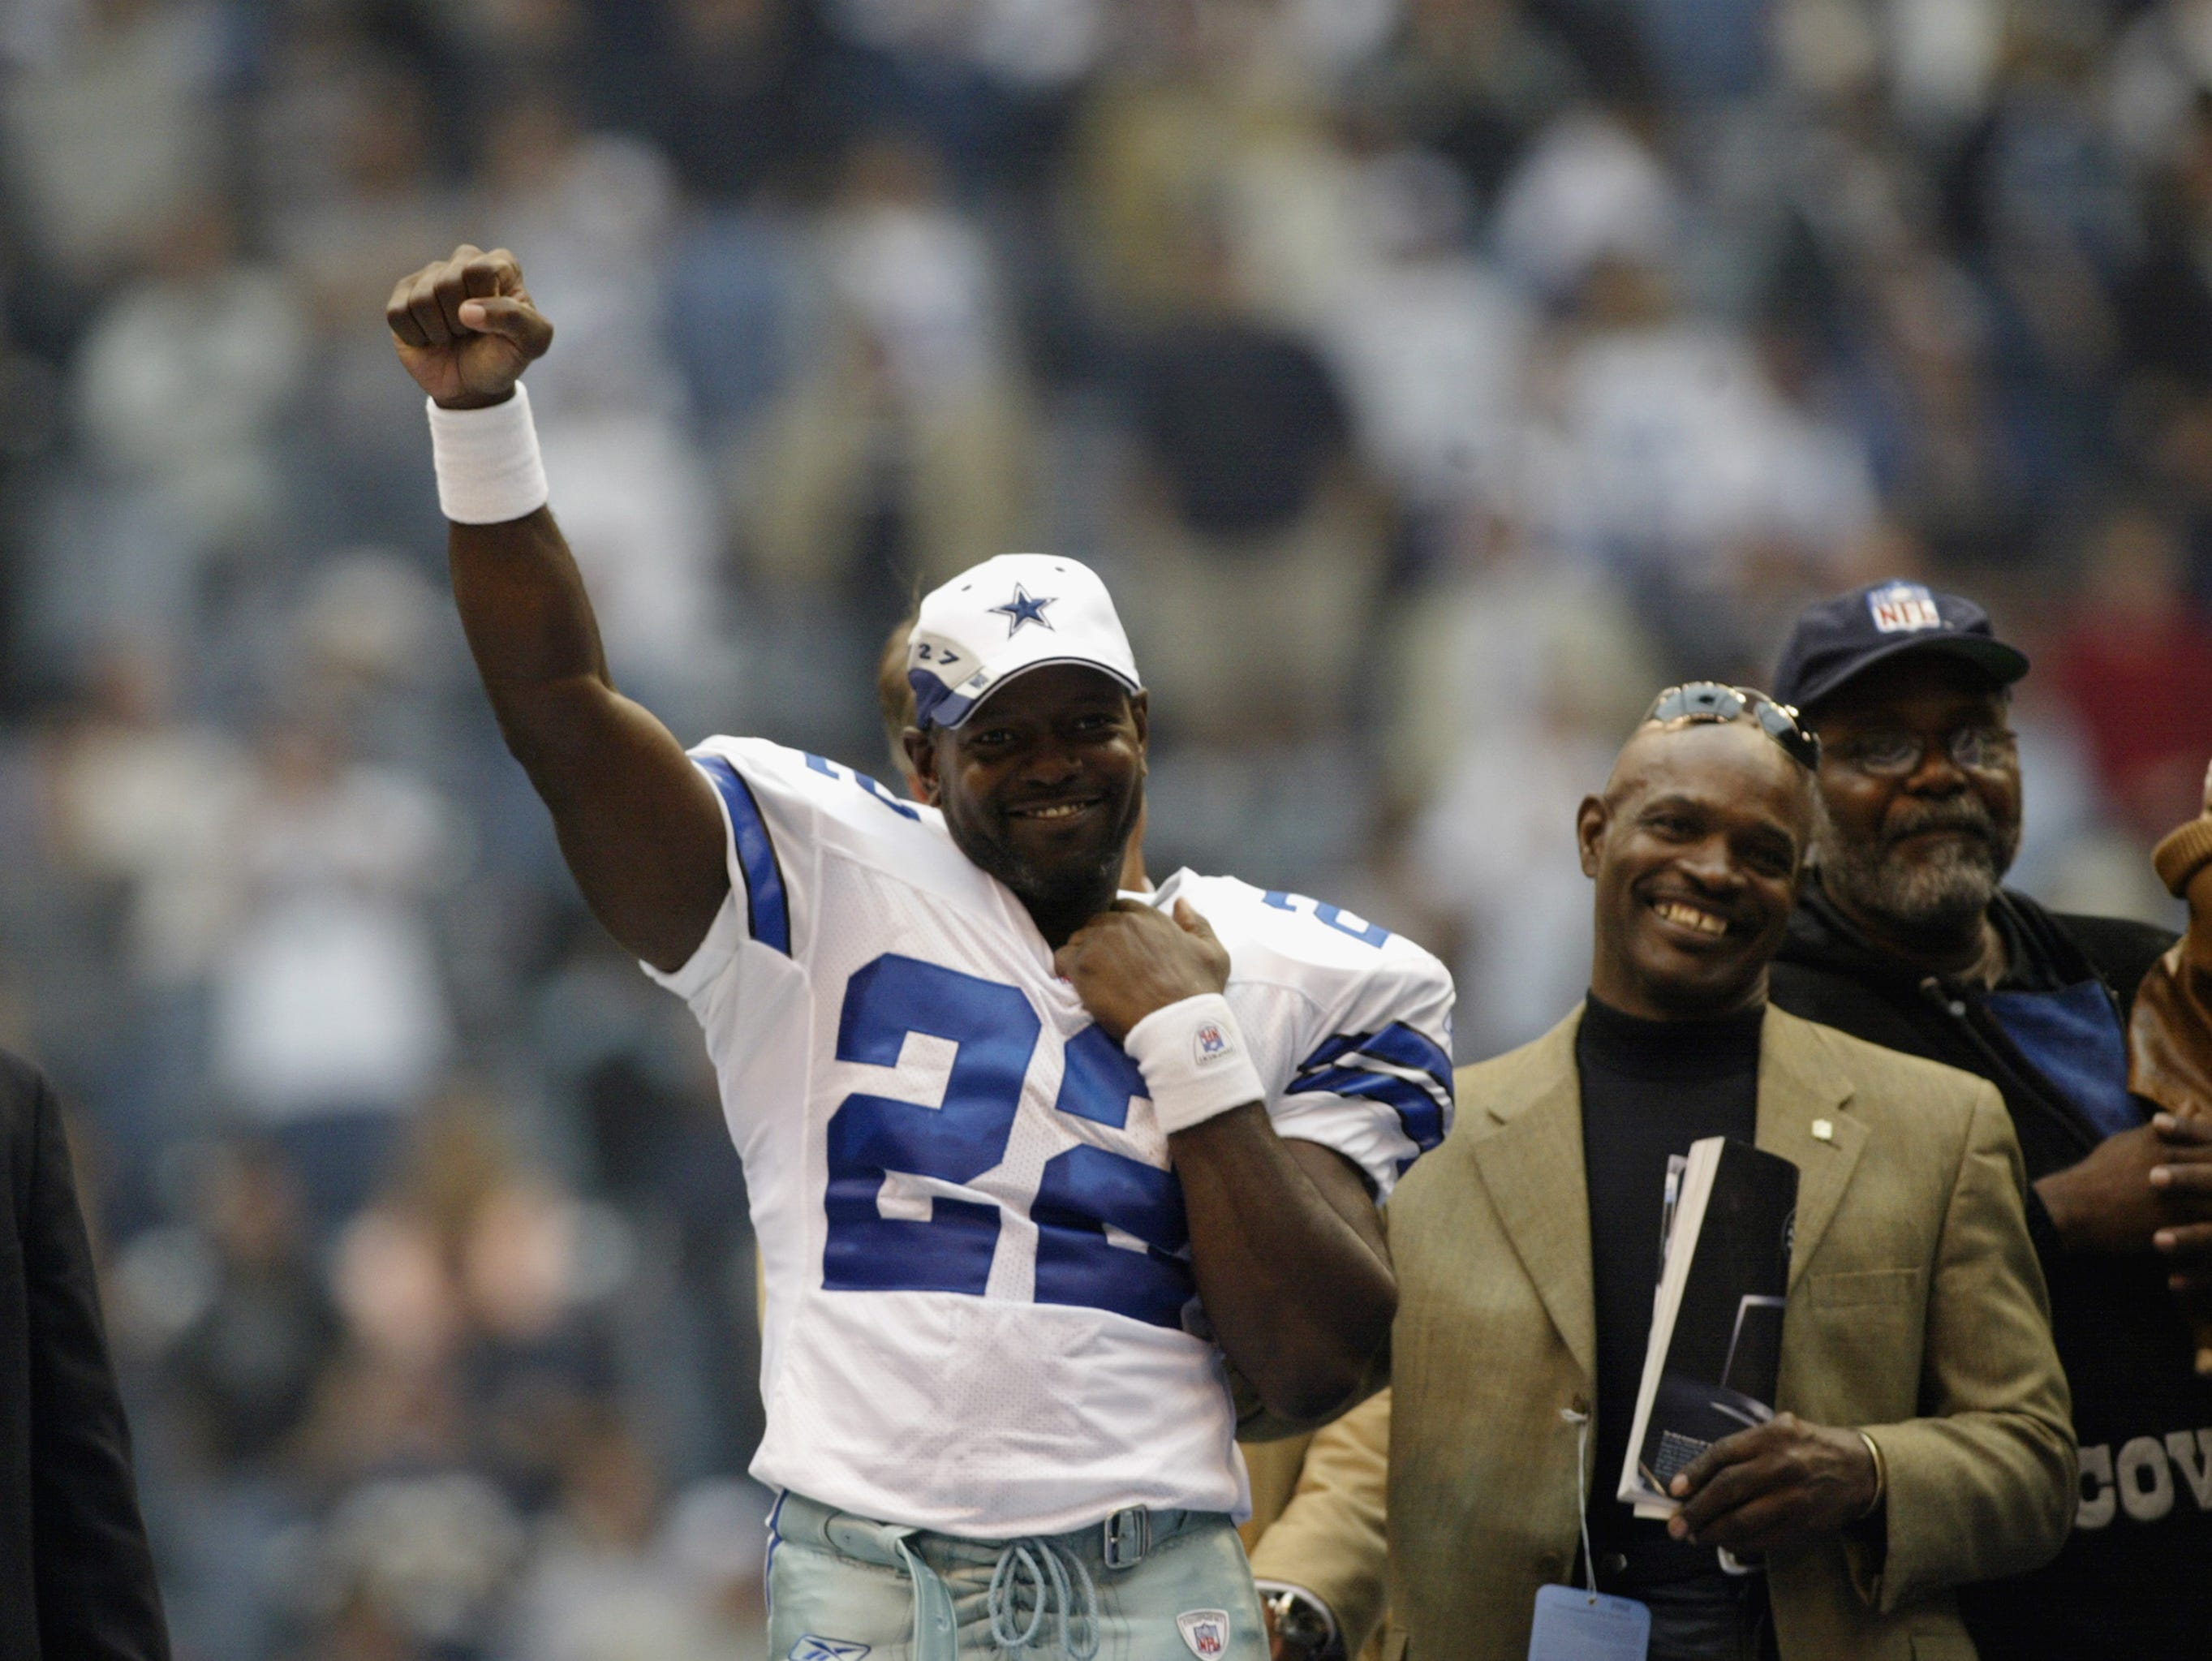 IRVING, TX - OCTOBER 27:    Emmitt Smith #22 of the Dallas Cowboys salutes the crowd as Eddie Payton, brother of Walter Payton looks on in ceremonies honoring Smith's breaking the NFL all time rushing record after their game versus the Seattle Seahawks on October 27, 2002 at Texas Stadium in Irving, Texas. The Seahawks won 17-14. (Photo by Stephen Dunn/Getty Images)